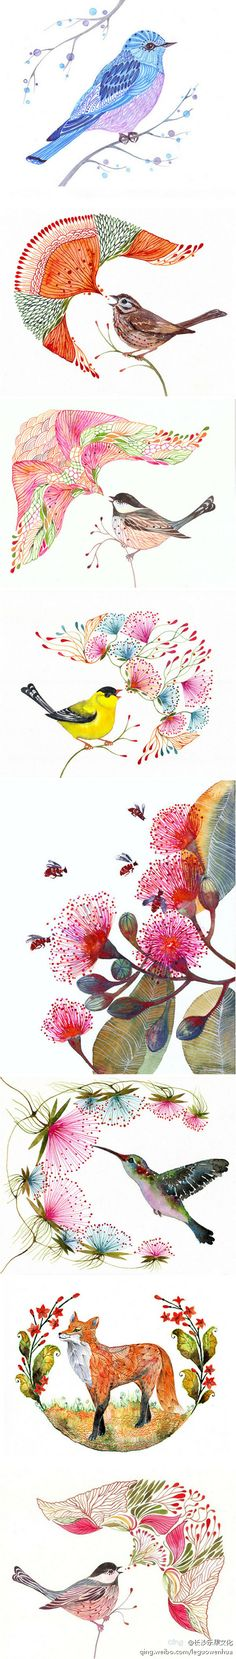 These pretty botanical & animal images could make very cute tattoos. Birds, flowers, woodland creatures, bees... it's hard to pick the cutest one.